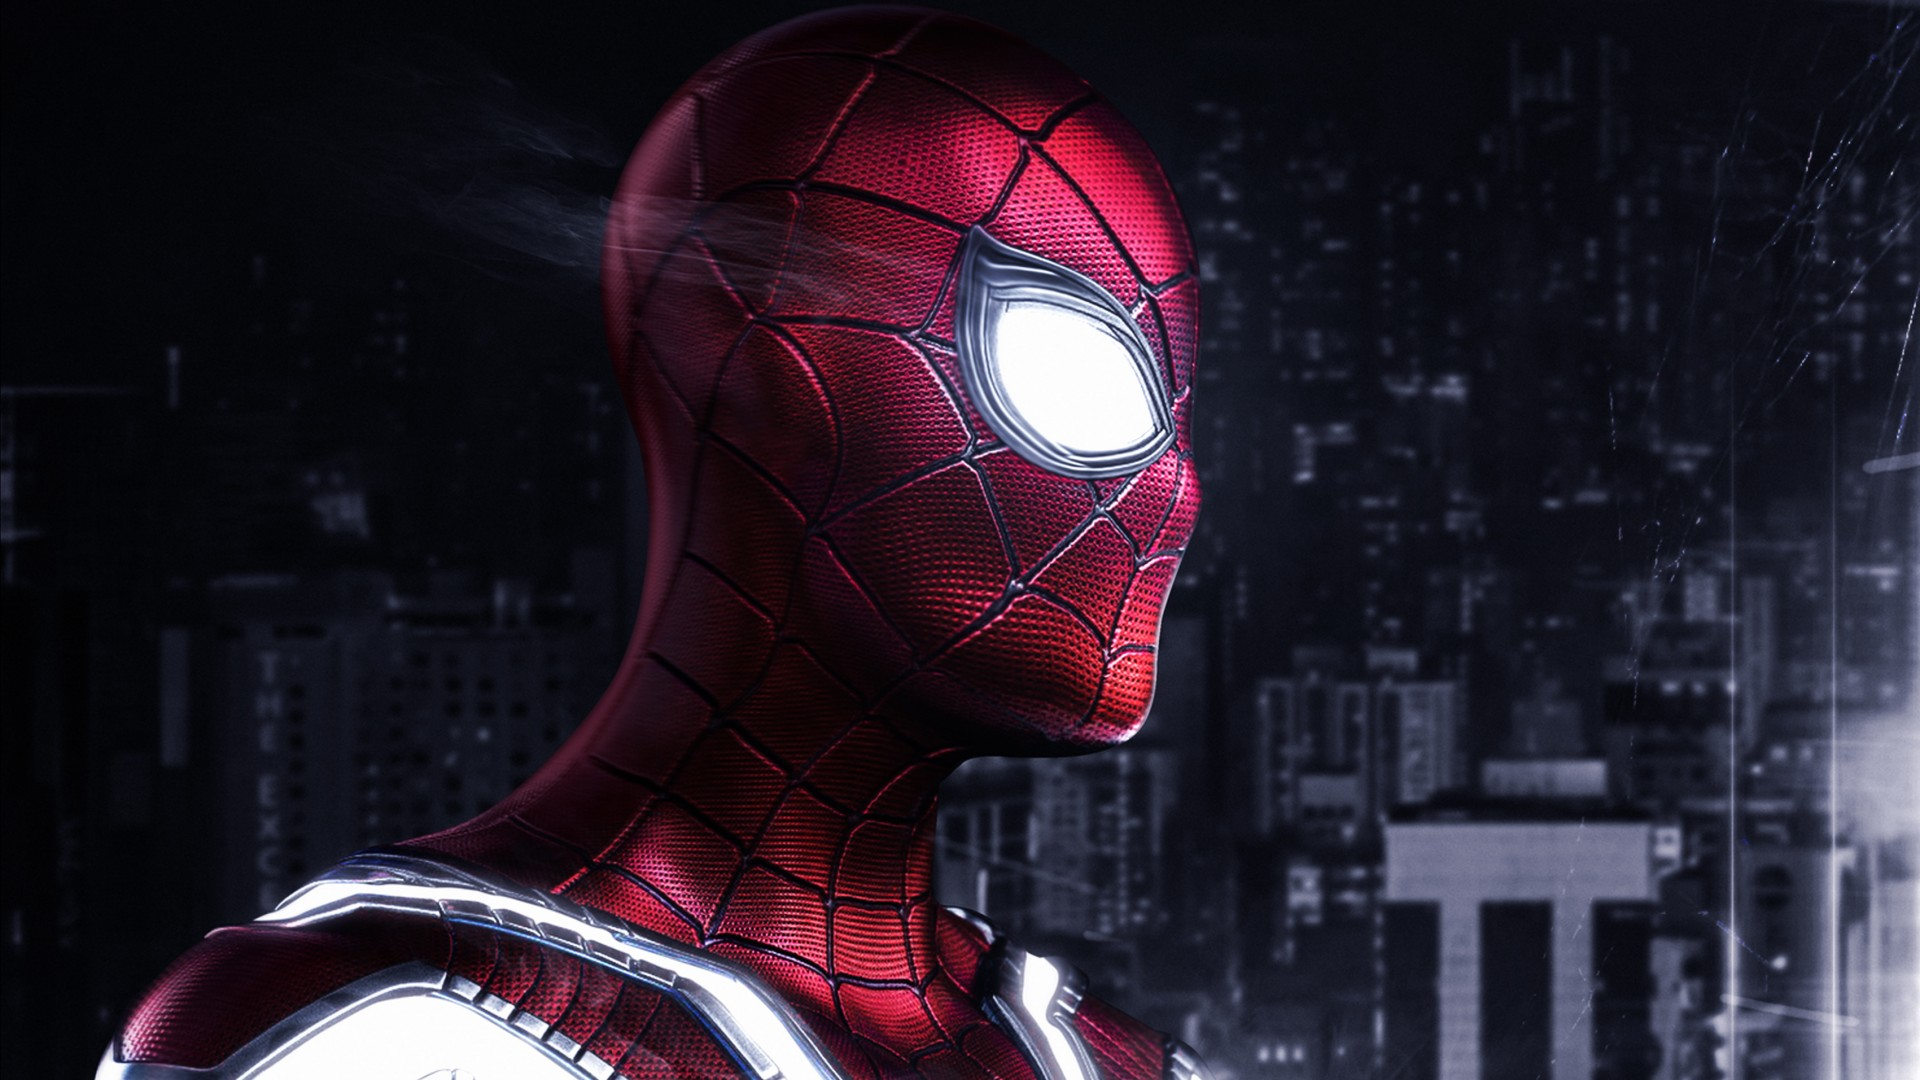 2560x1440 Wallpaper Cars Wallpaper Marvel S Spider Man Iron Spider Artwork 4k